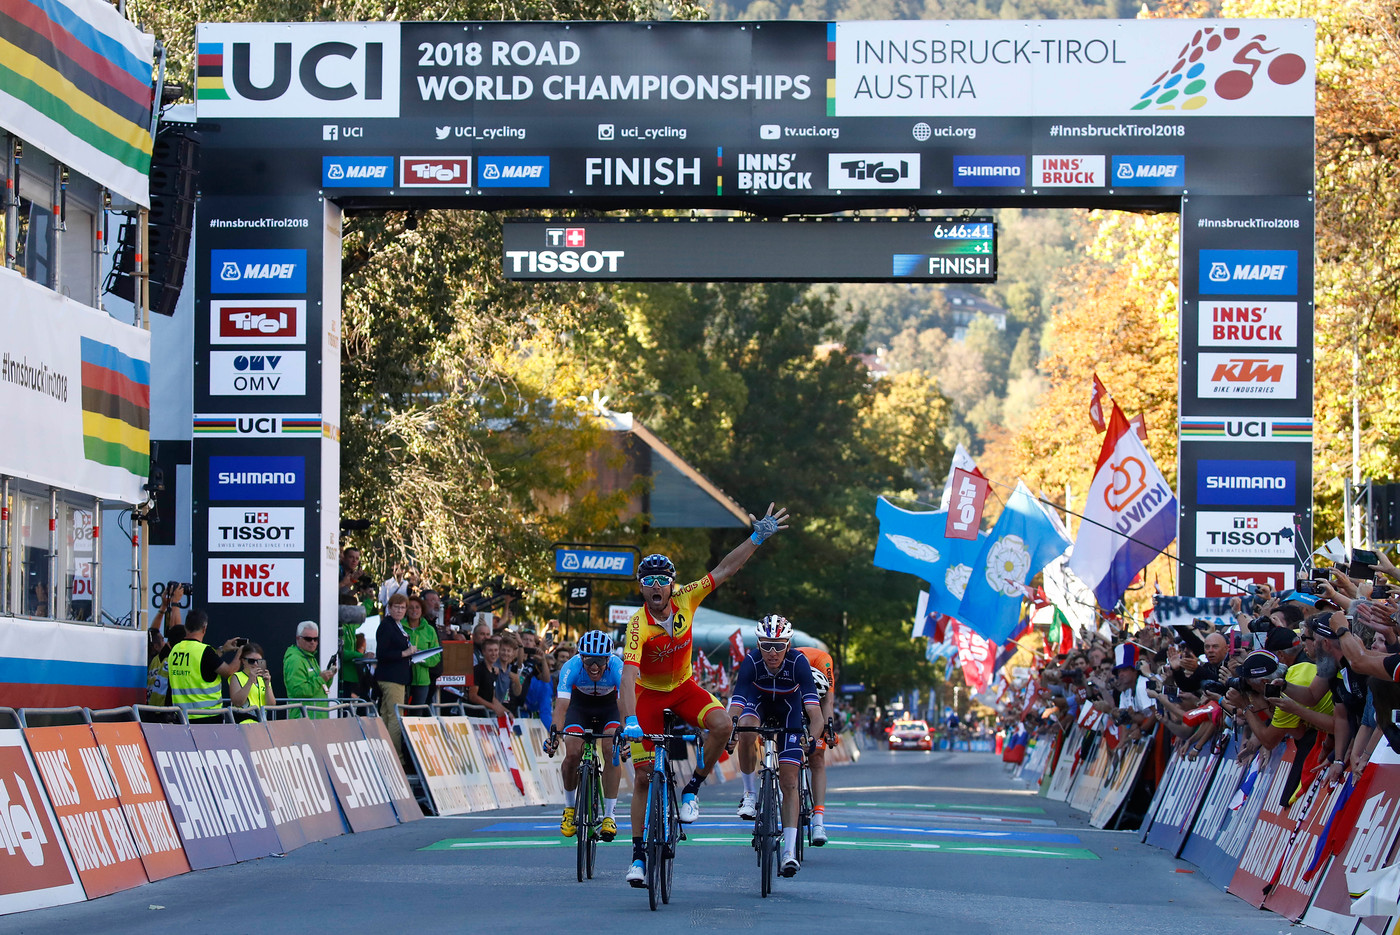 Valverde takes victory in men's elite road race